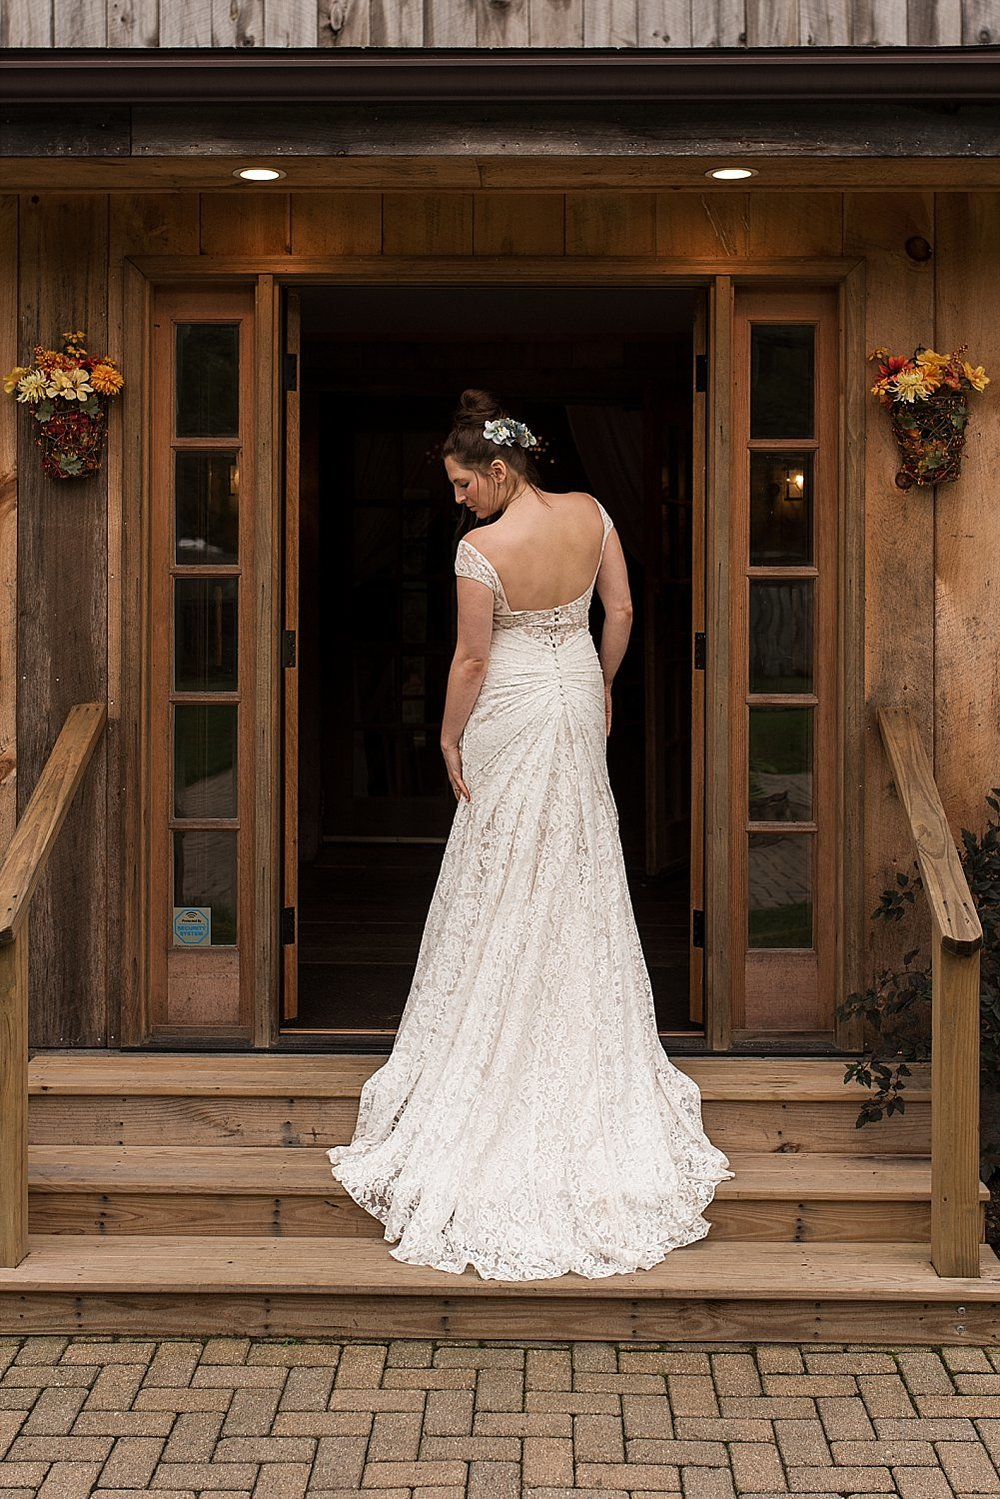 Bride showing off the back of her wedding dress in ct wedding photography